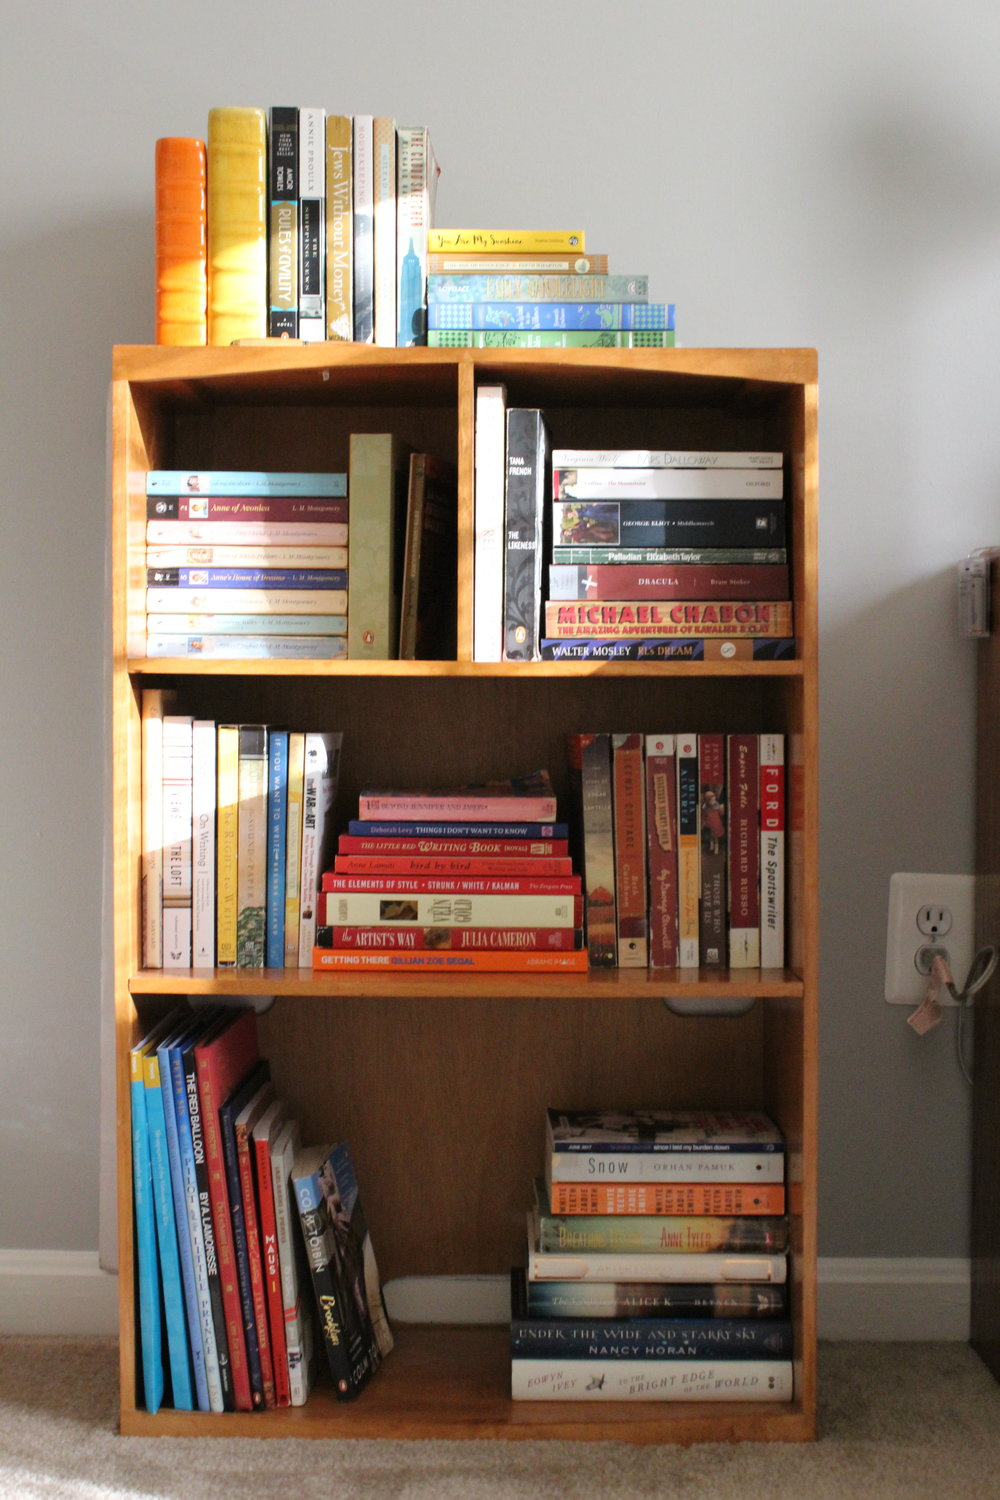 home decor office bookshelf shelf styling.JPG